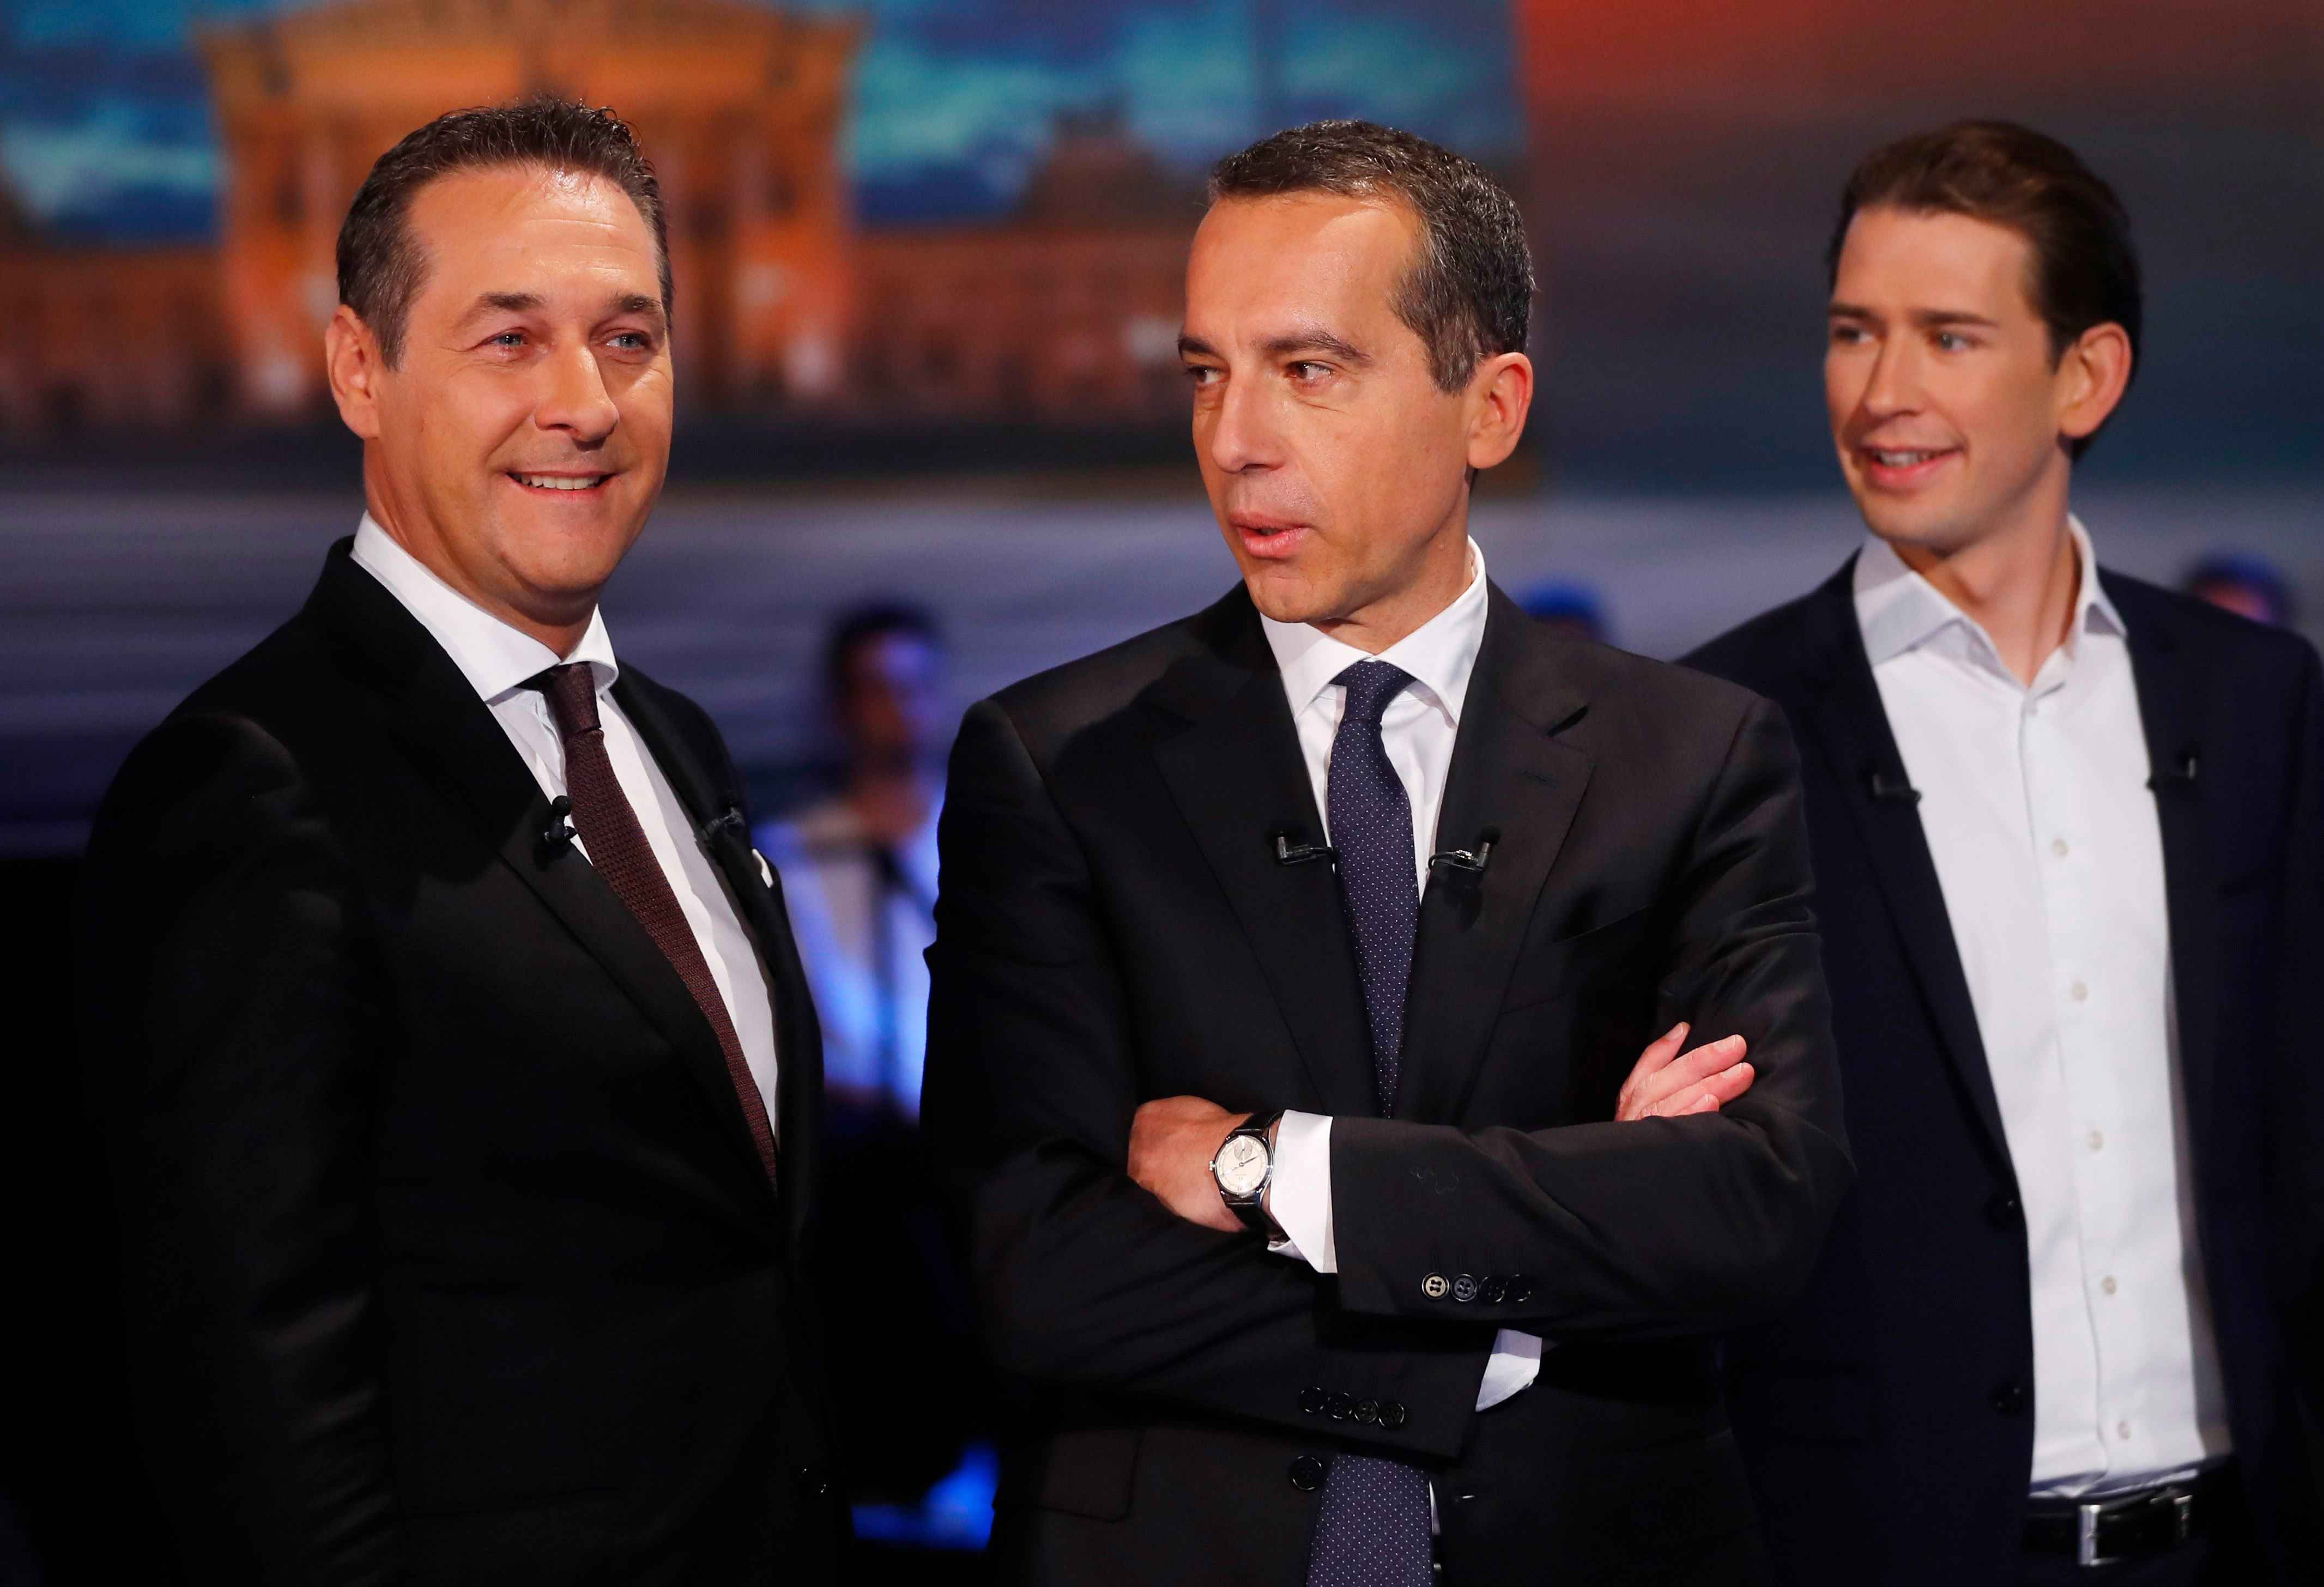 l r freedom party leader heinz christian strache social democrats leader christian kern and people s party leader sebastian kurz prepare for a tv debate